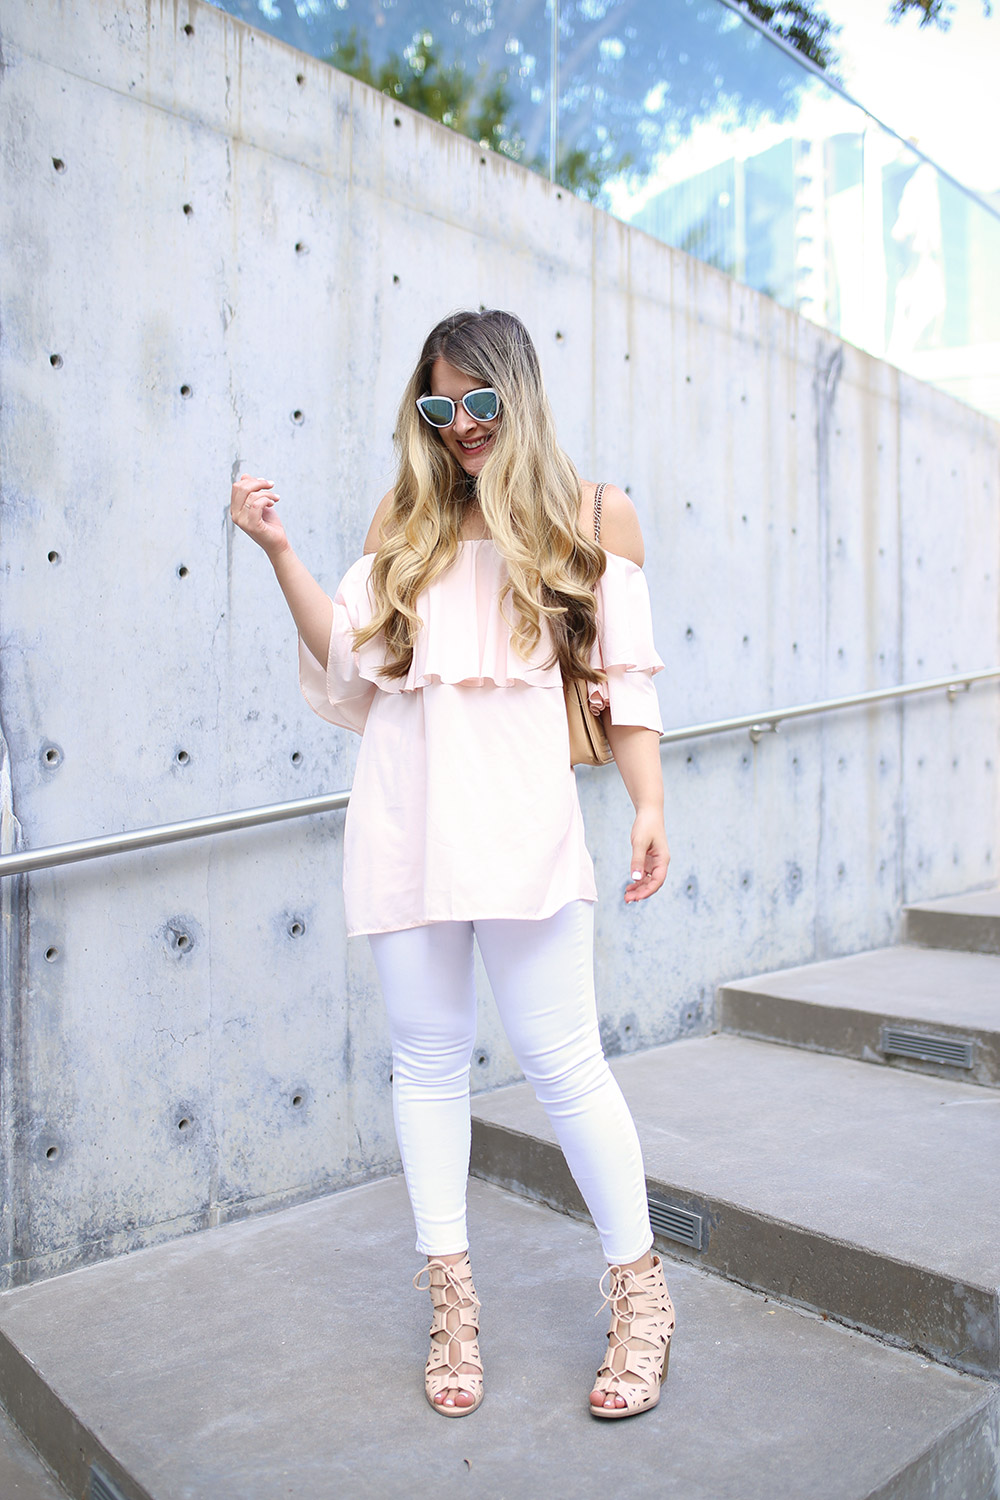 Cute summer outfit idea with pink off-the-shoulder top from Chicwish and white jeans - How to style white jeans - Style blogger - Dallas style blogger - Pink top and white jeans - Cool mirrored sunglasses